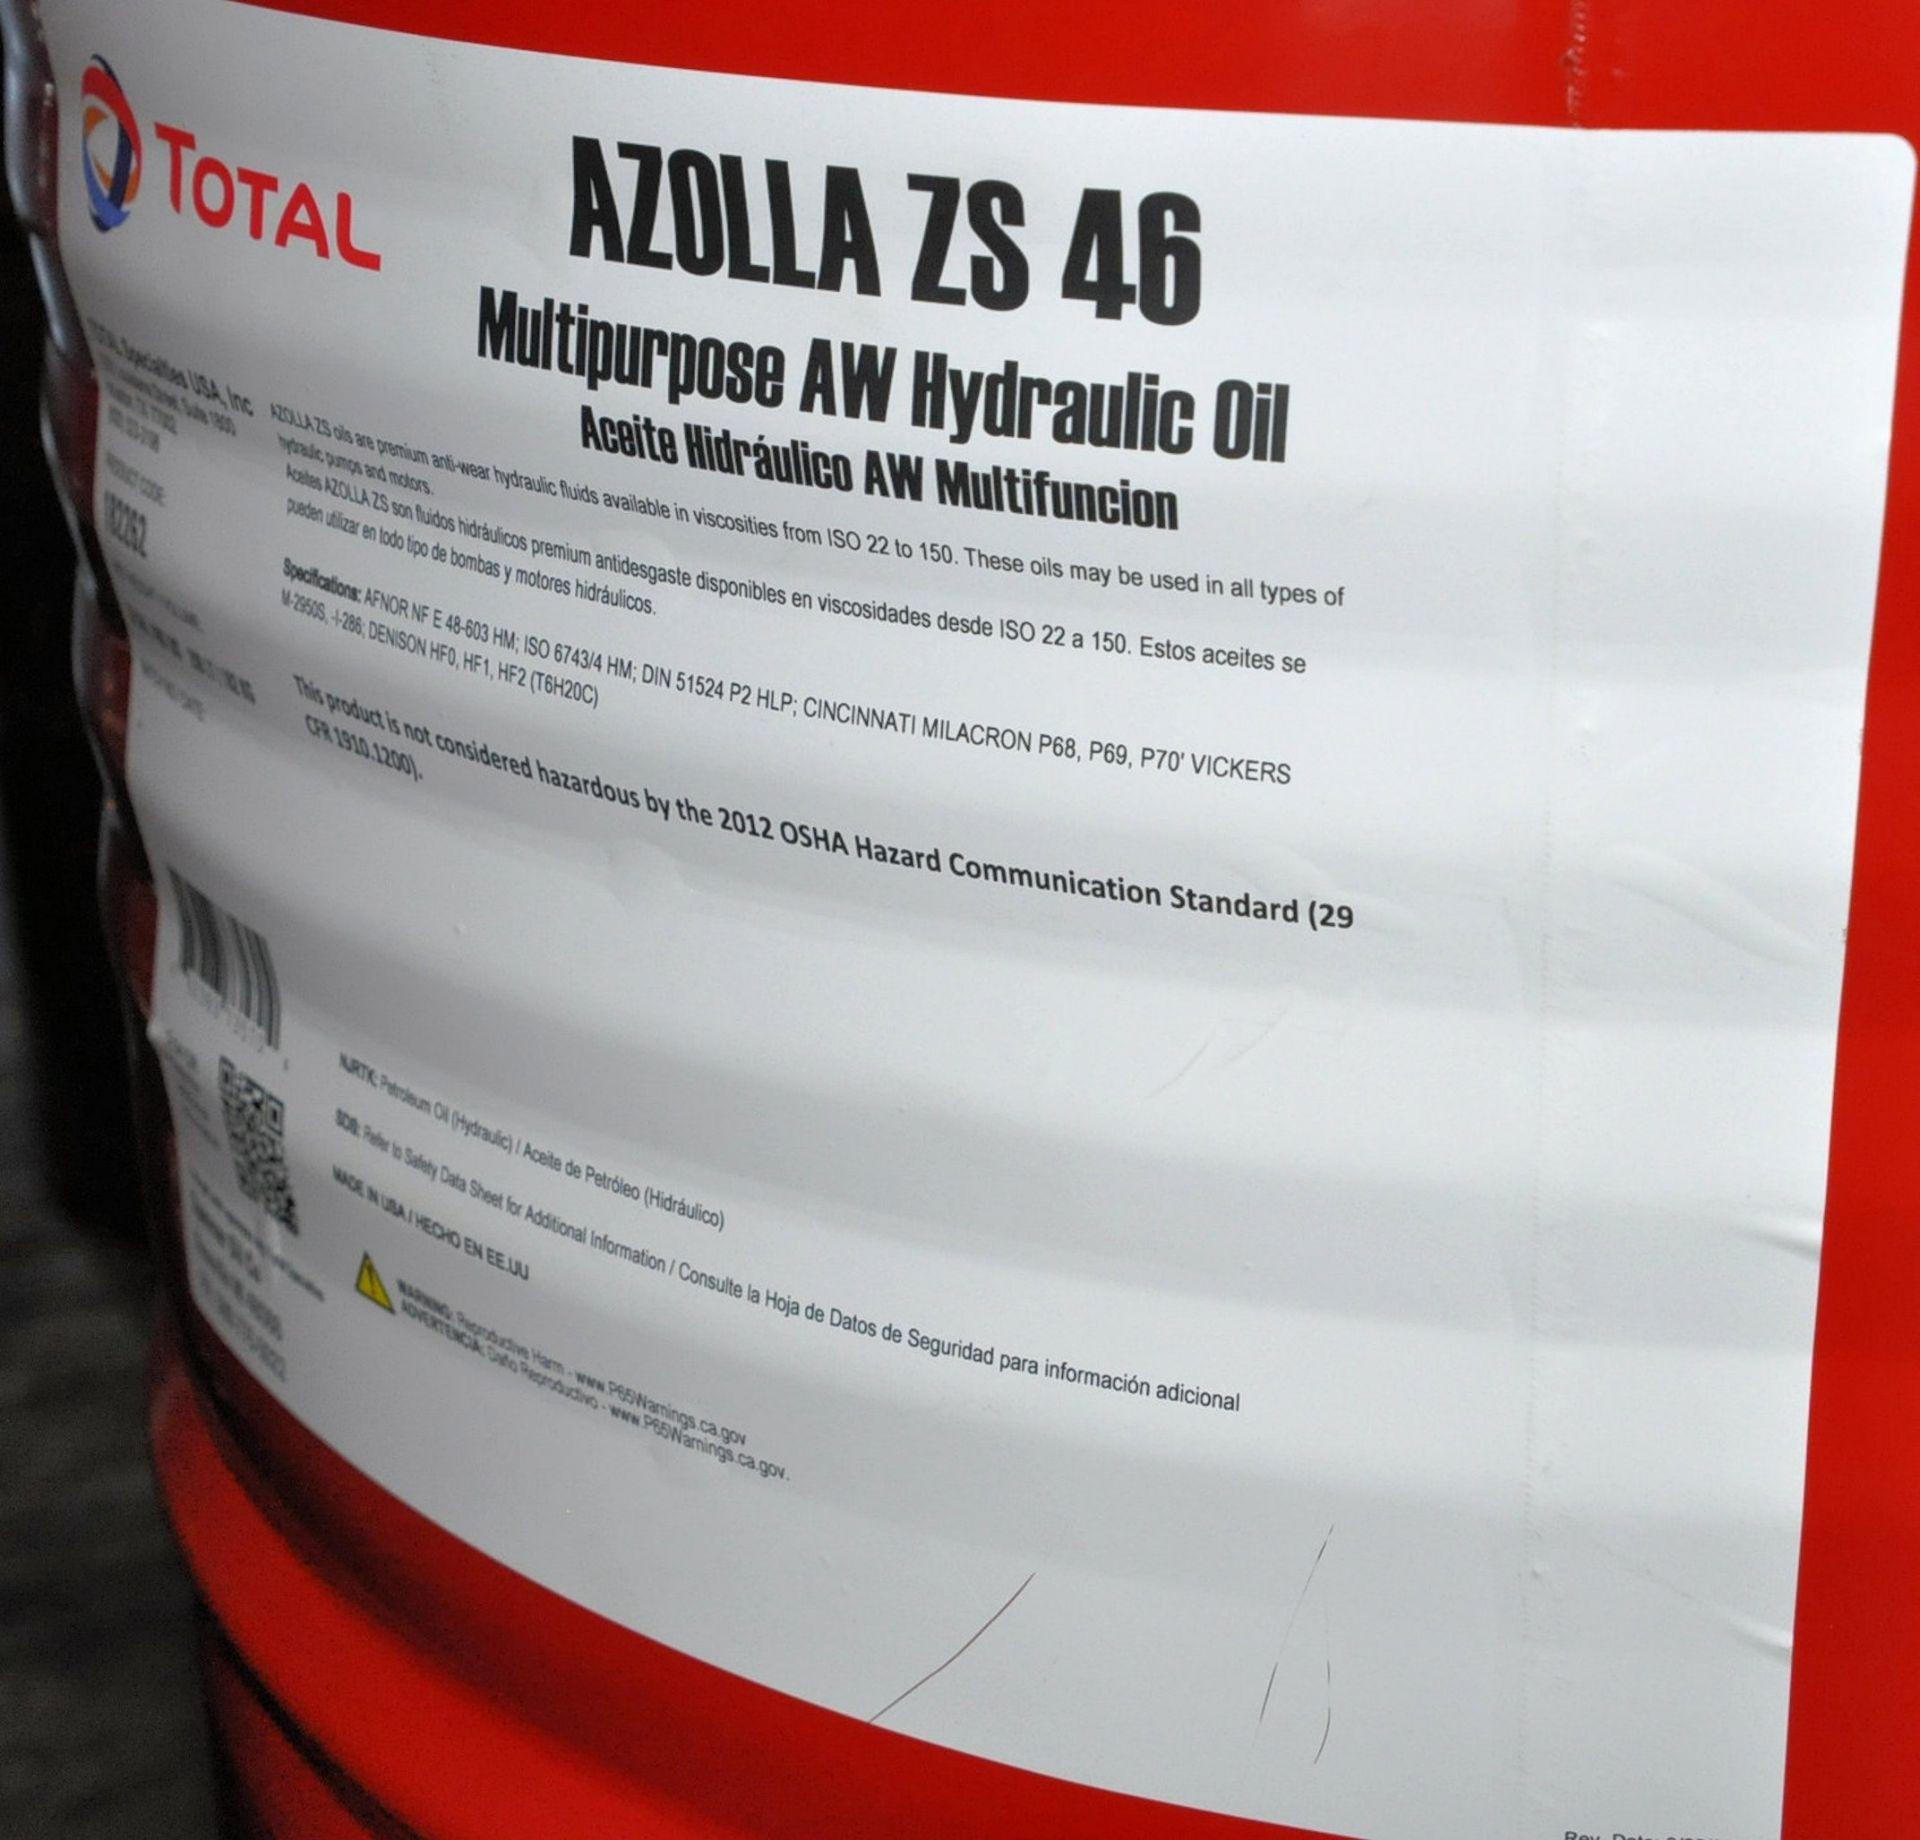 Lot-(2) 55-Gallon Drums of Total Azolla ZS 46 Multipurpose AW Hydraulic Oil on (1) Pallet, (Oils - Image 2 of 2